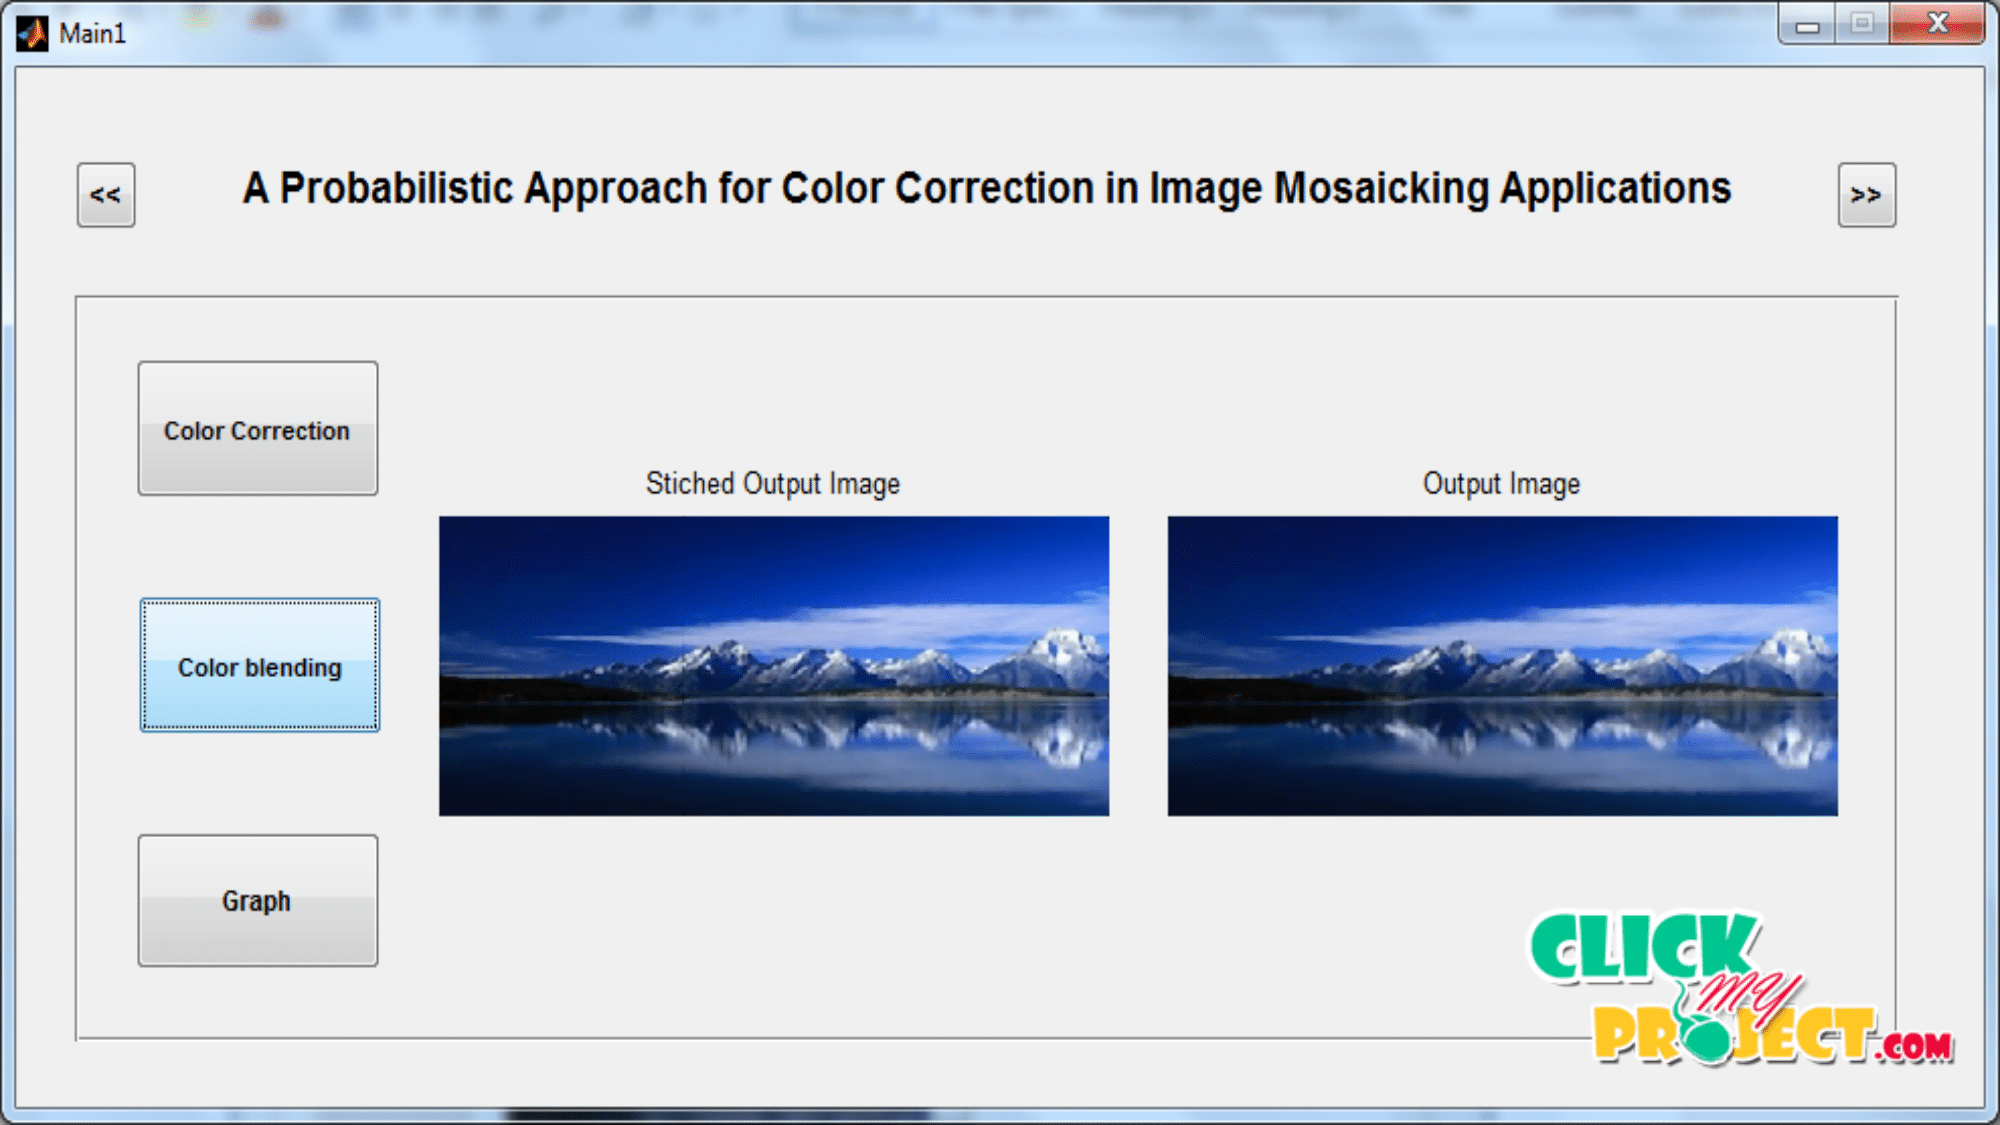 A Probabilistic Approach for Color Correction in Image Mosaicking Applications